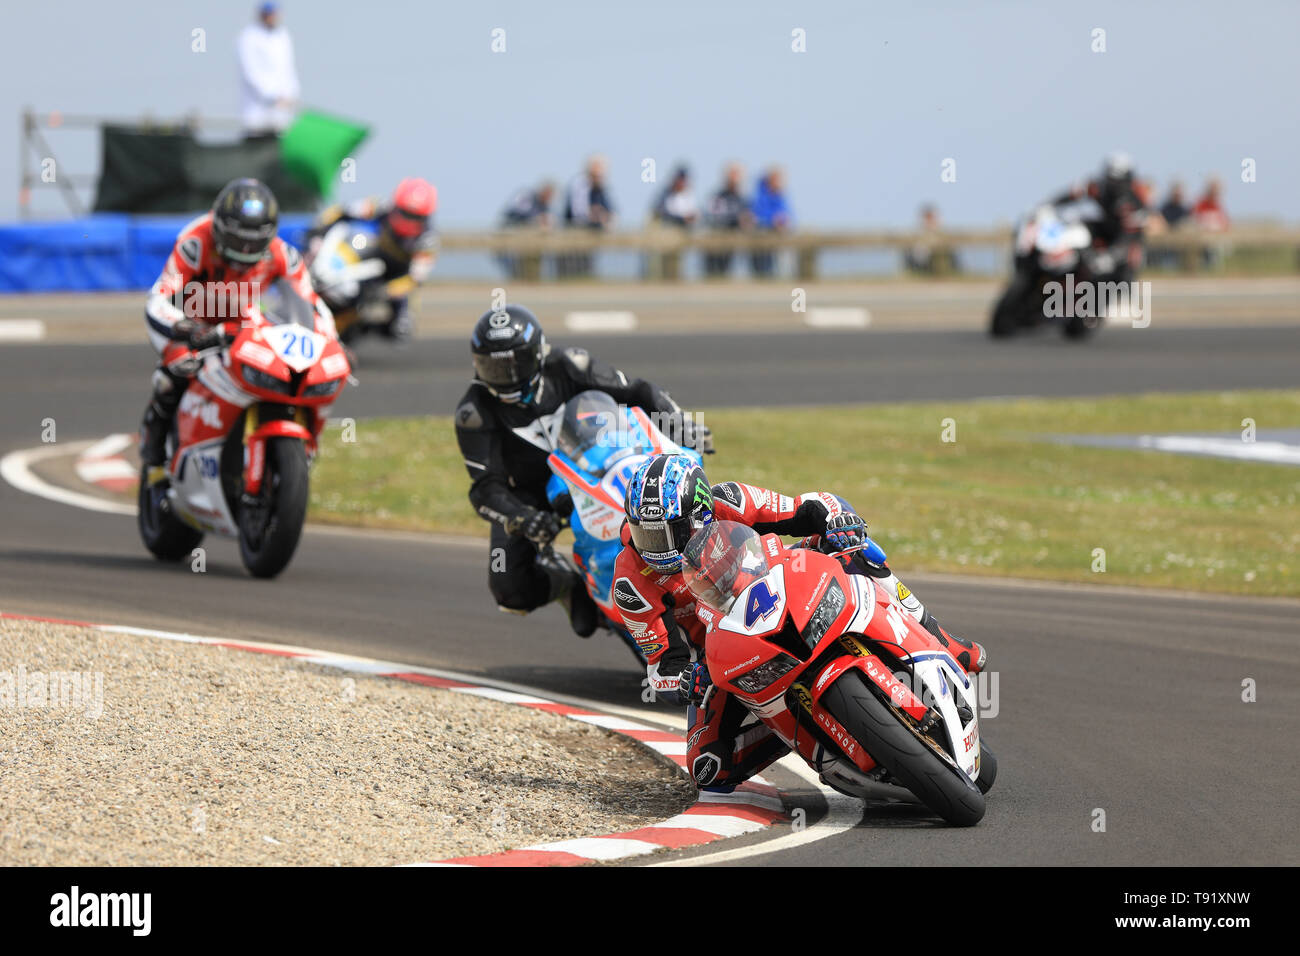 Portrush, Northern Ireland. 16th May, 2019. International North West 200 Motorcycle road racing, Thursday practice and evening racing; General action shot from the 2019 NW200 Credit: Action Plus Sports/Alamy Live News - Stock Image